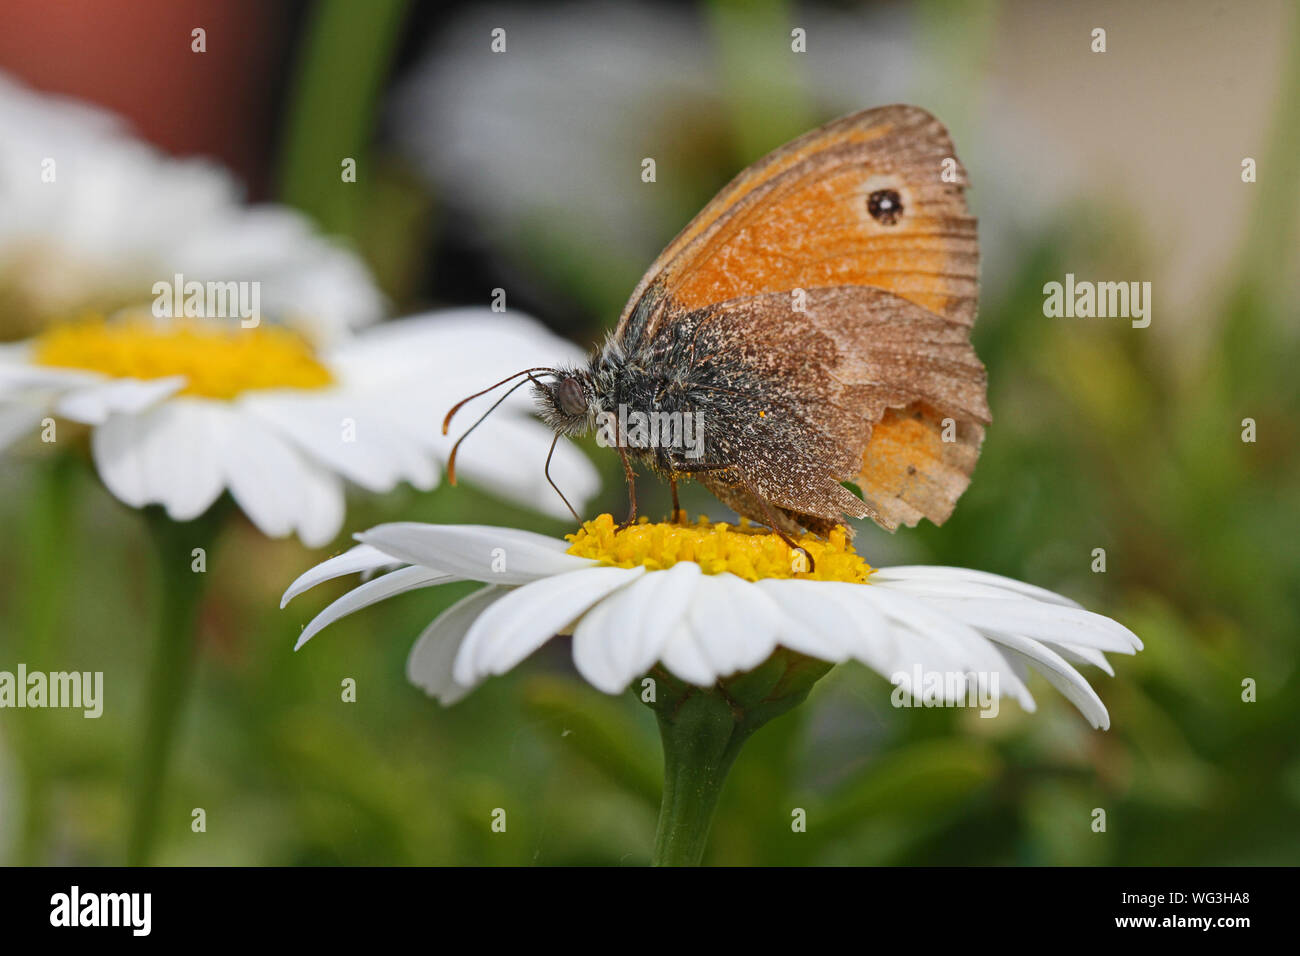 tiny small heath butterfly very close up Latin coenonympha pamphilus feeding on a marguerite or white swan river daisy Latin name brachyscome in Italy Stock Photo